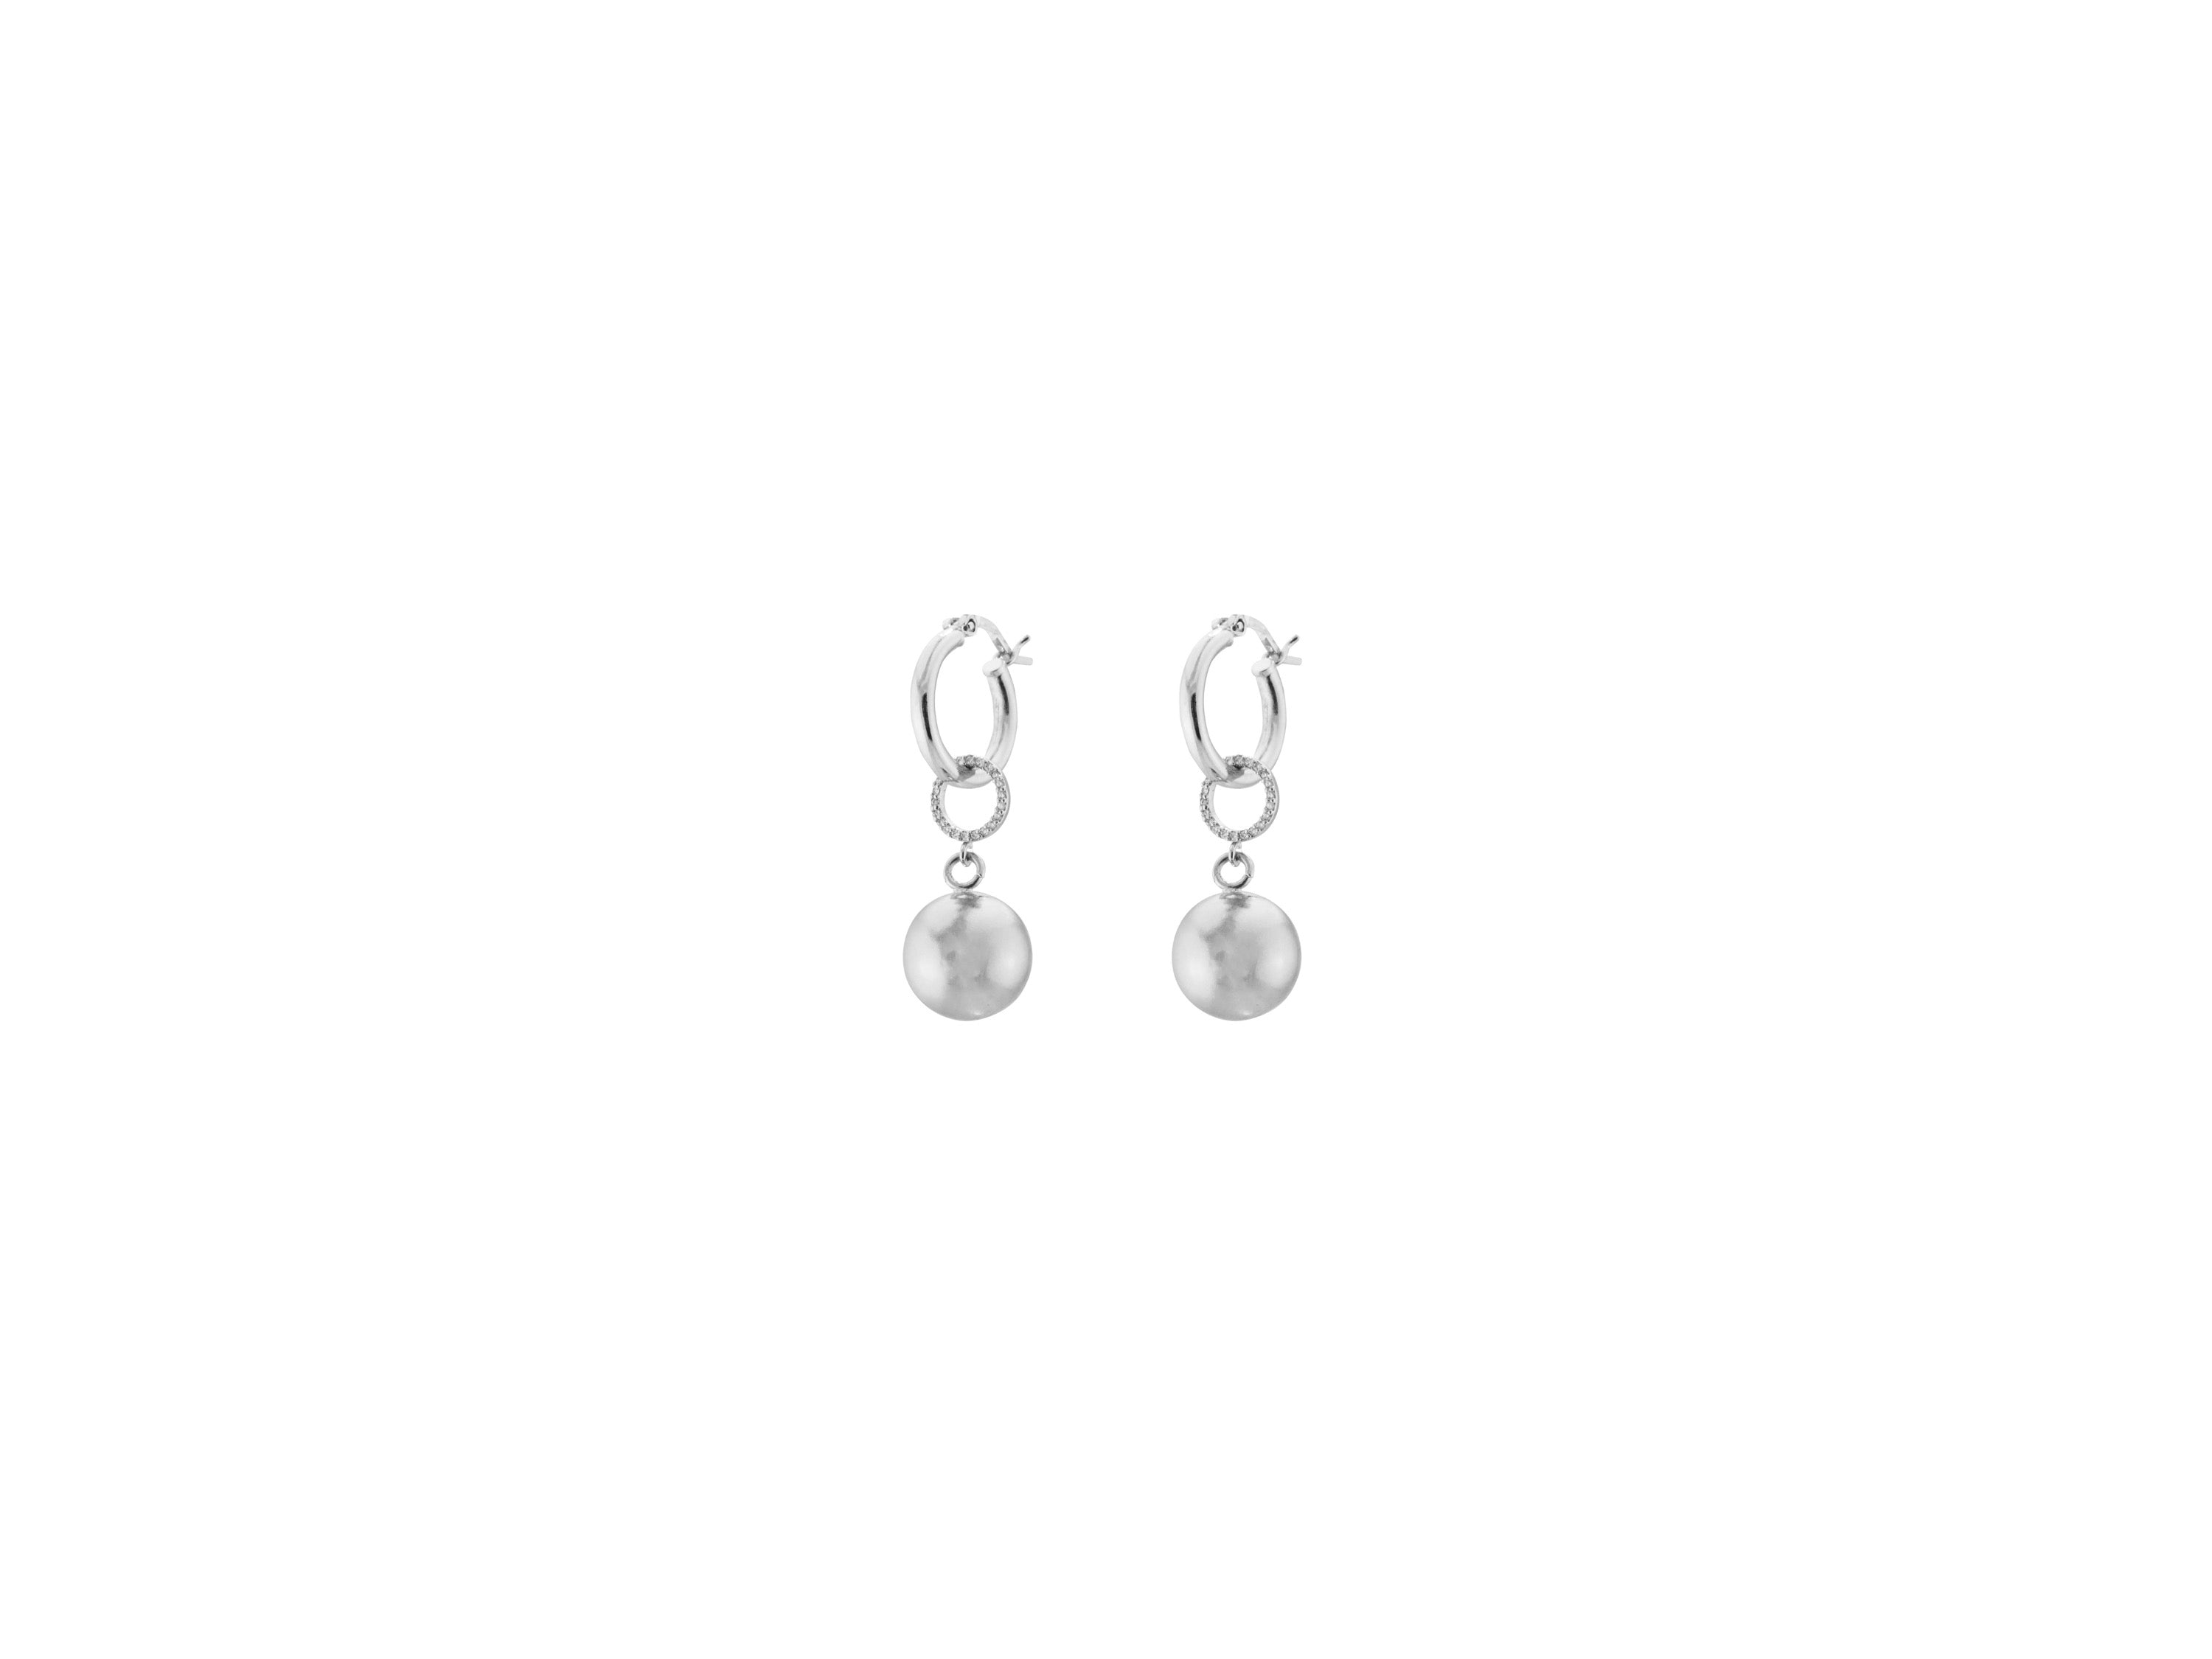 Full Moon Petite Earrings / Silver